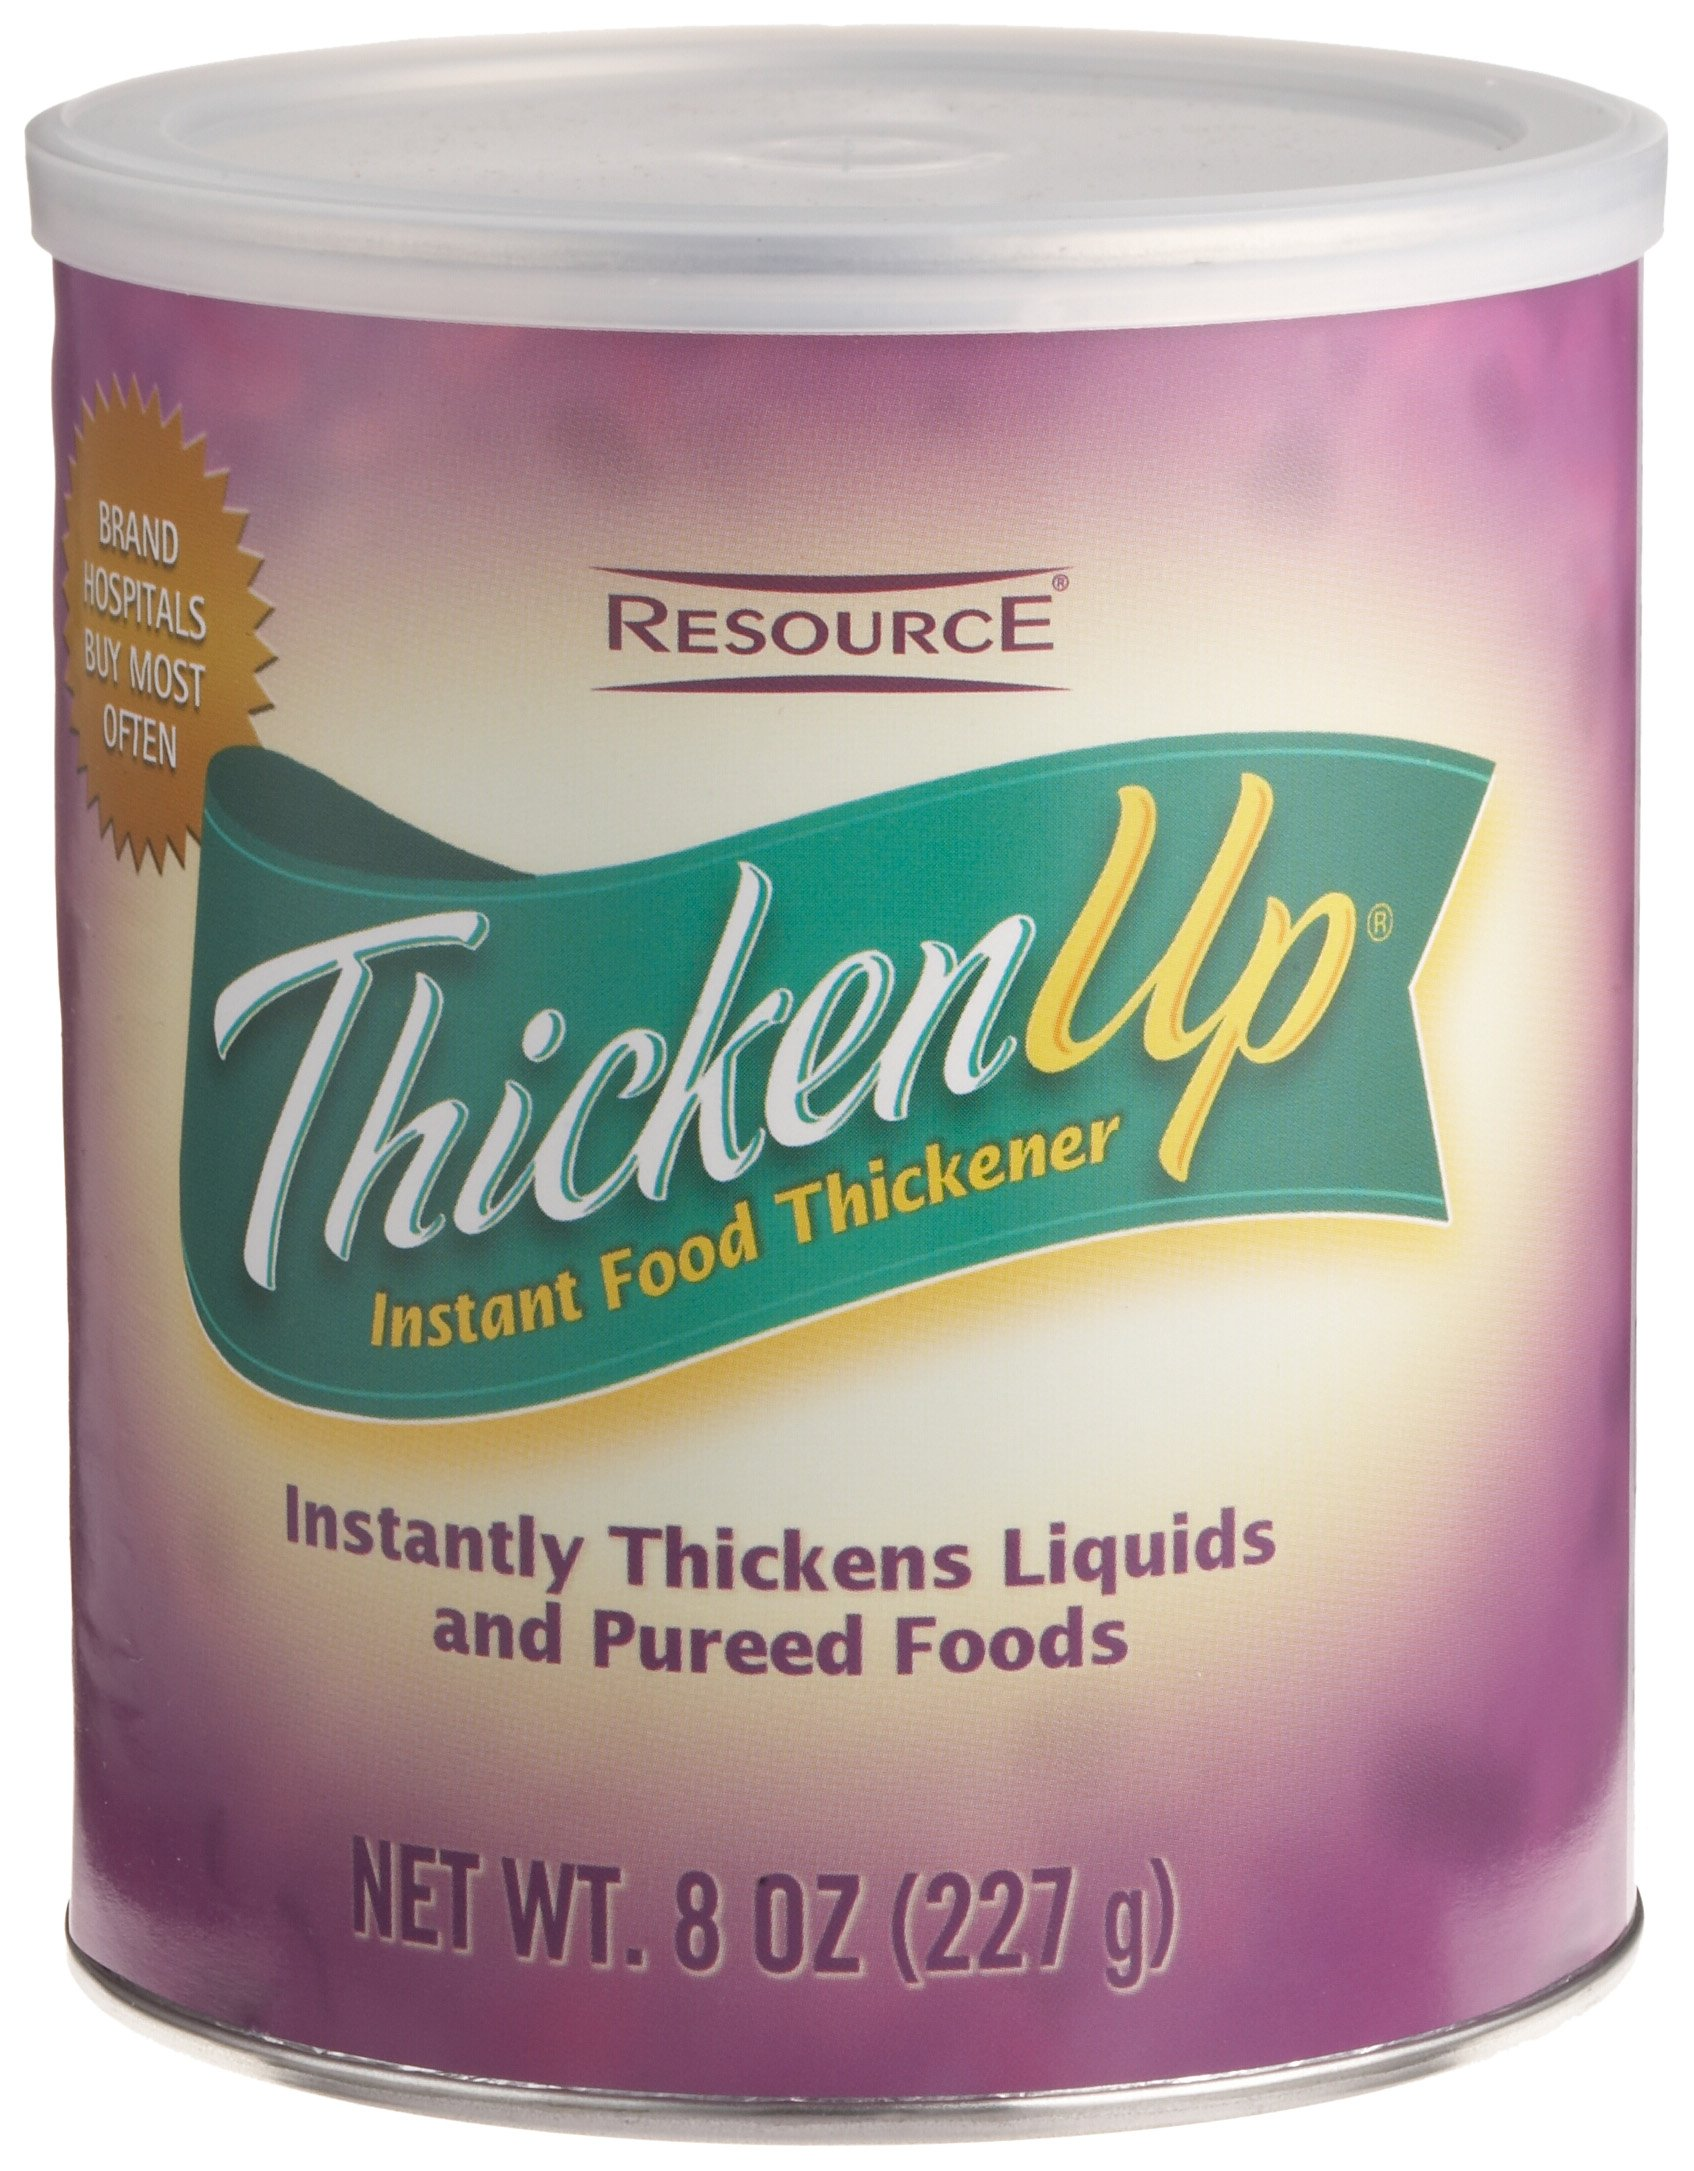 Resource ThickenUp Instant Food & Drink Thickener Powder, Unflavored, 8 Ounce Canister (Pack of 12) by ReSource (Image #2)